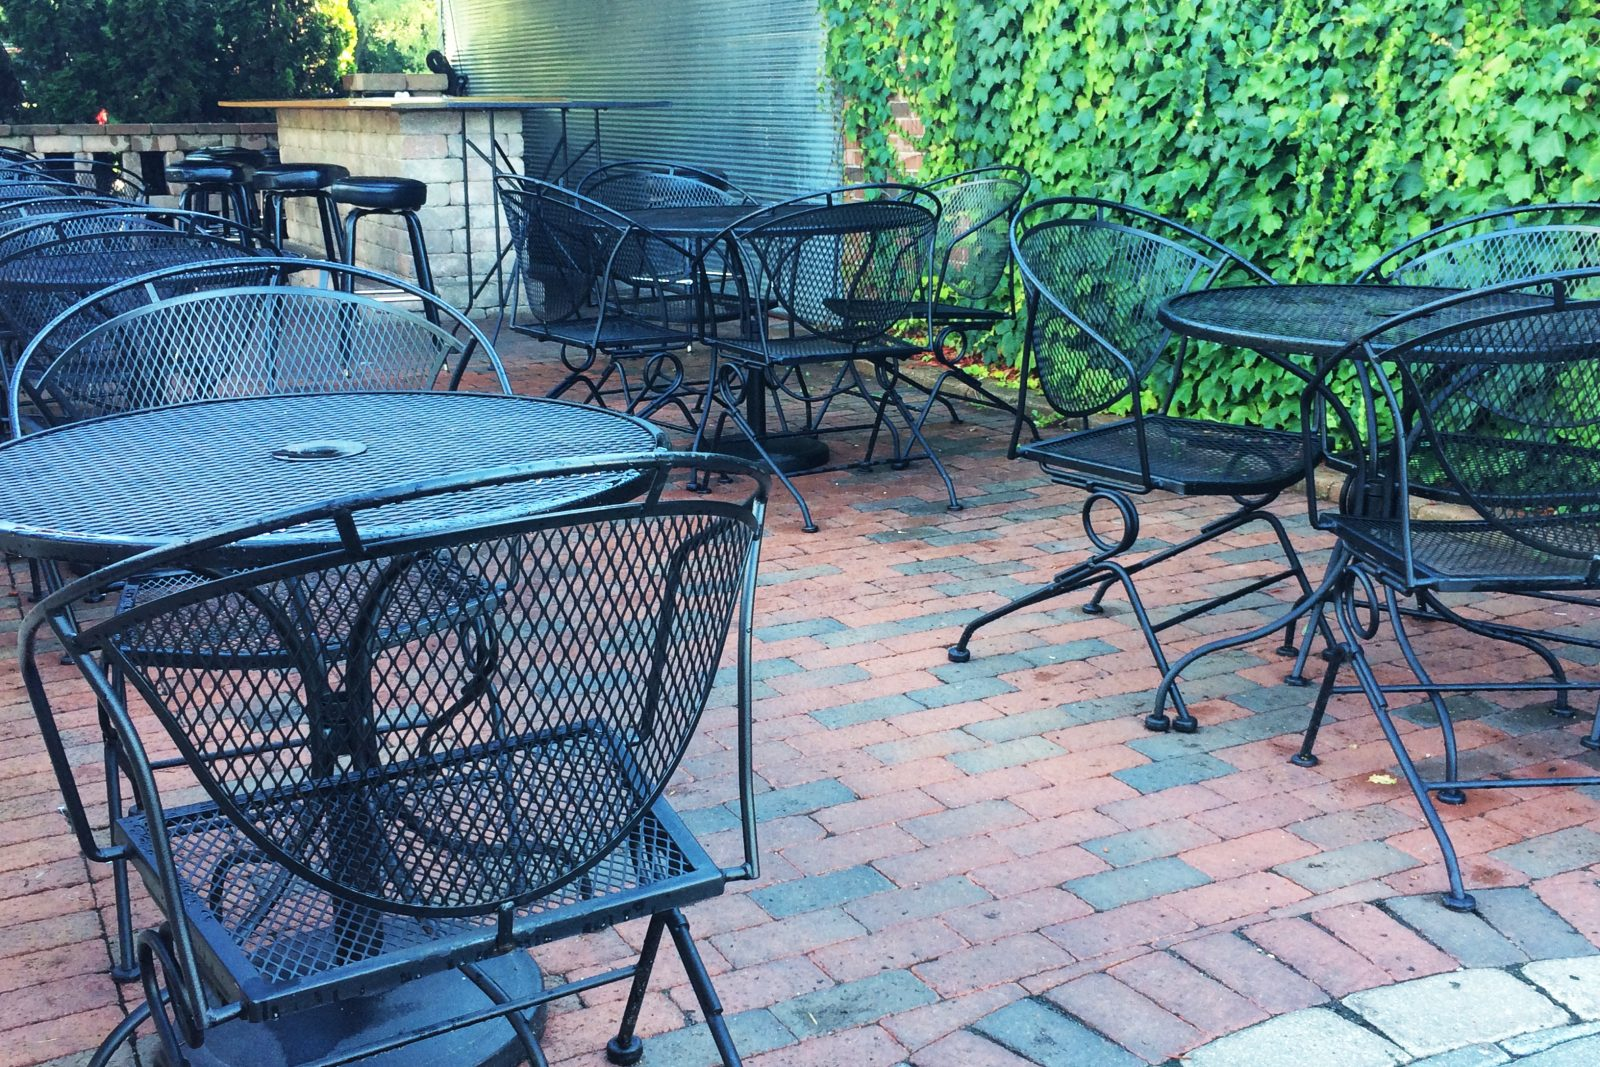 Poison Ivy Pub, Roscoe Ilinois. Beautiful Ivy Wall and outdoor patio, fun live music and great food. #GoRockford Find more great restaurant ideas at Embellishmints.com